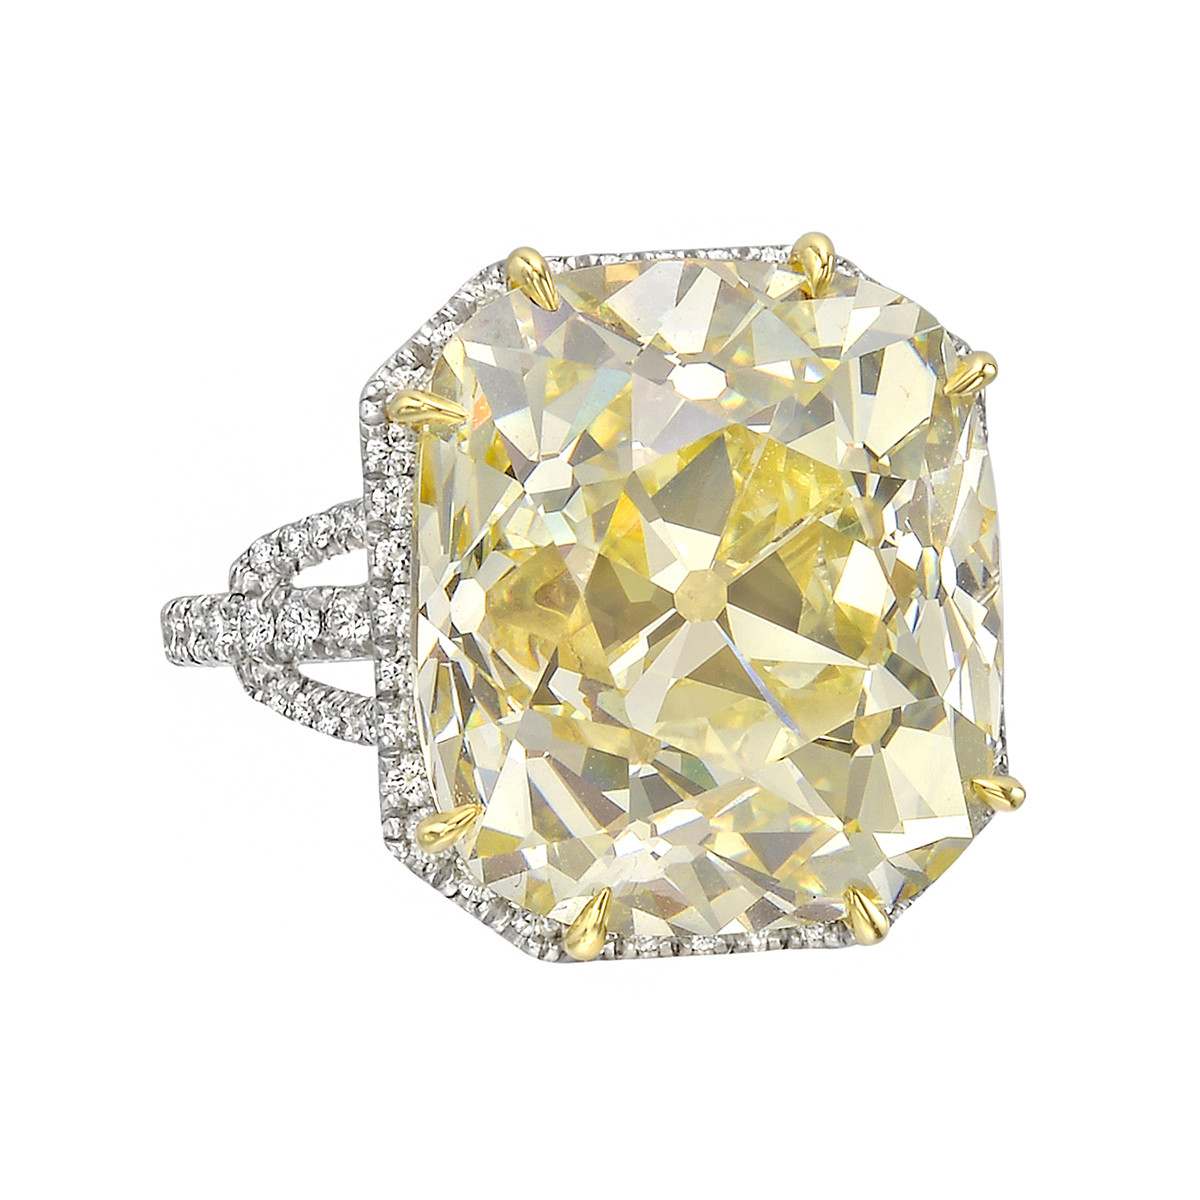 14.08ct Fancy Light Yellow Old Mine Diamond Ring